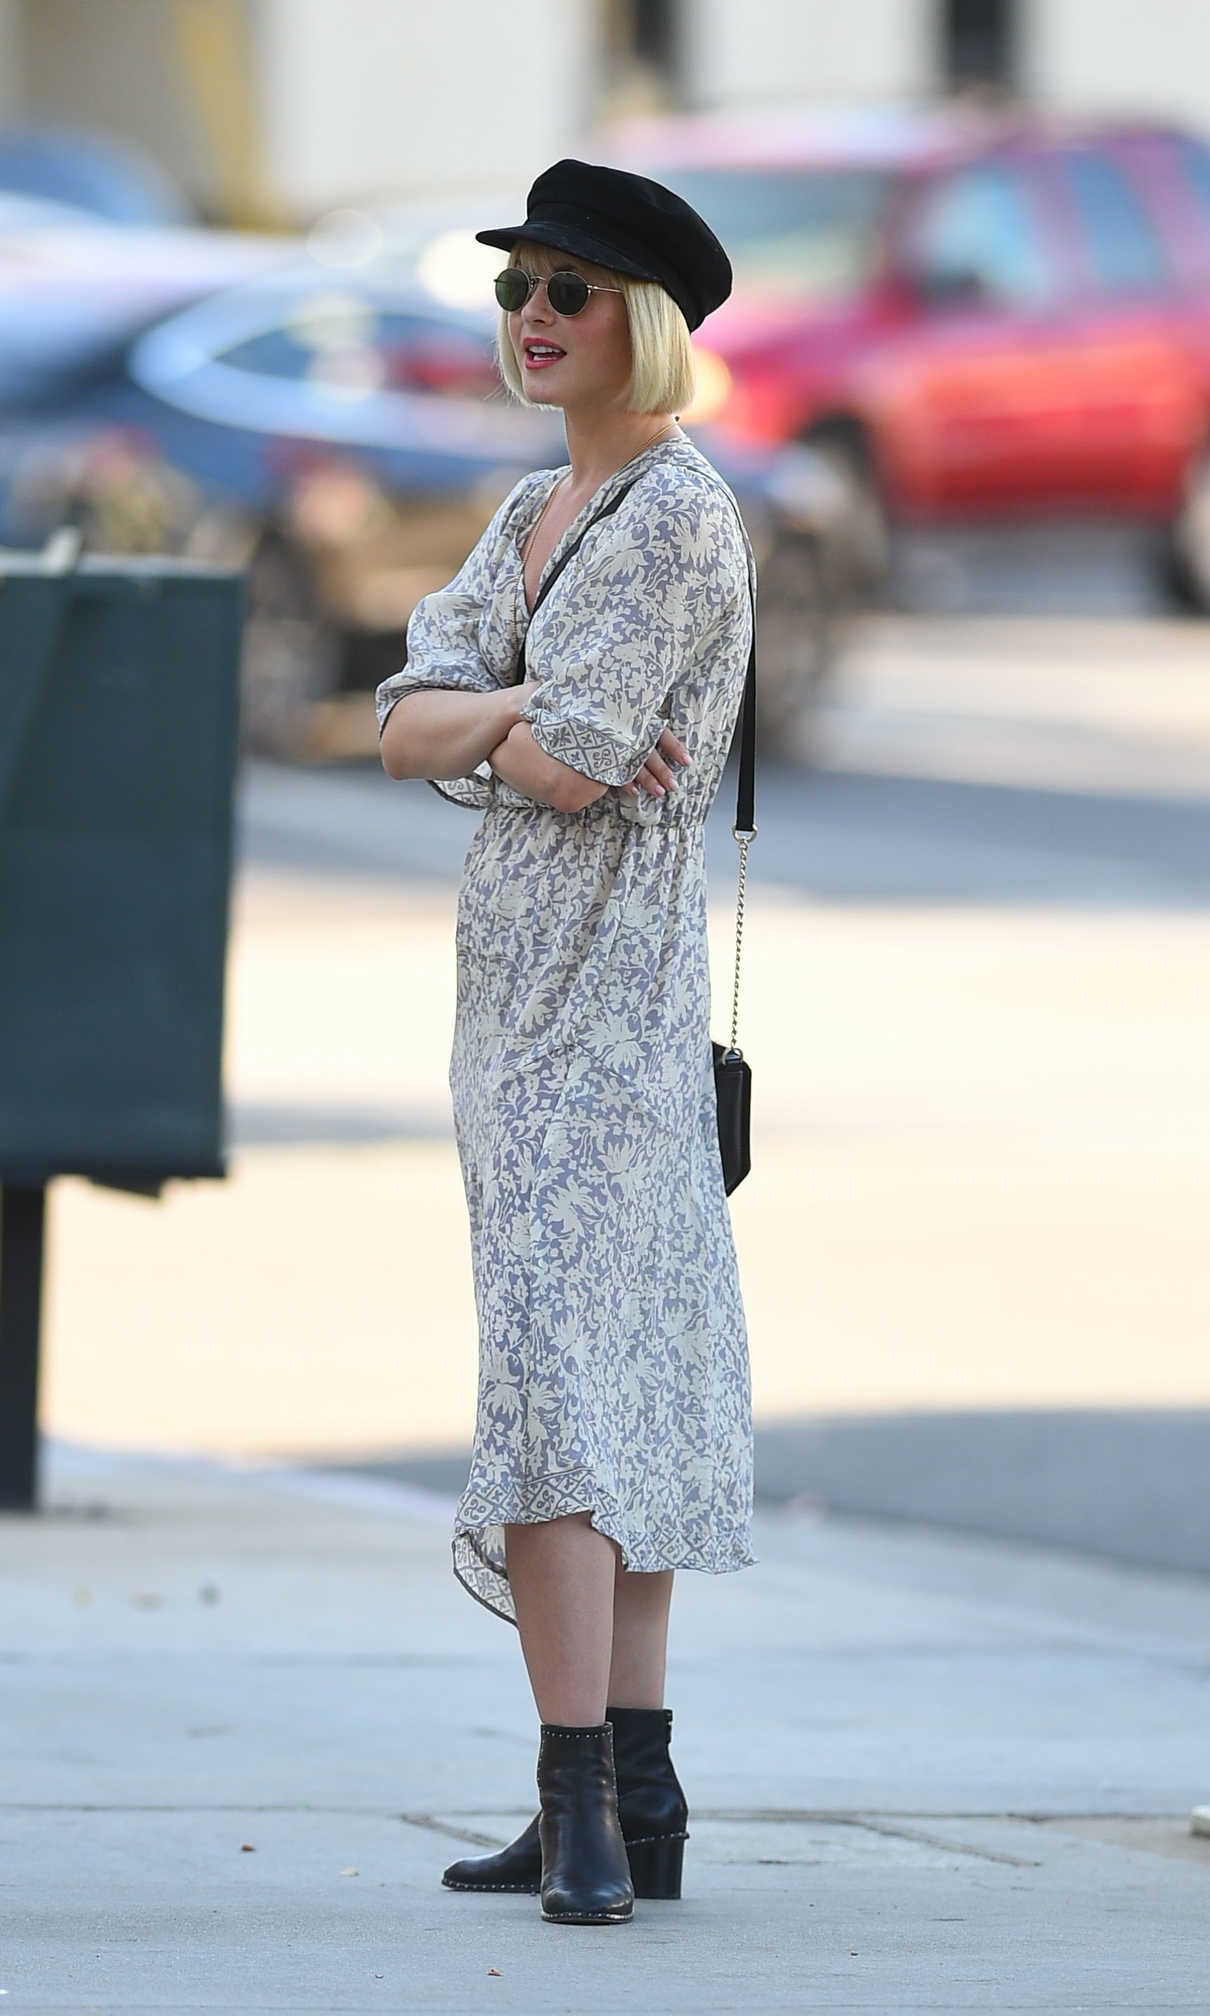 Julianne Hough in a Summer Floral Dress